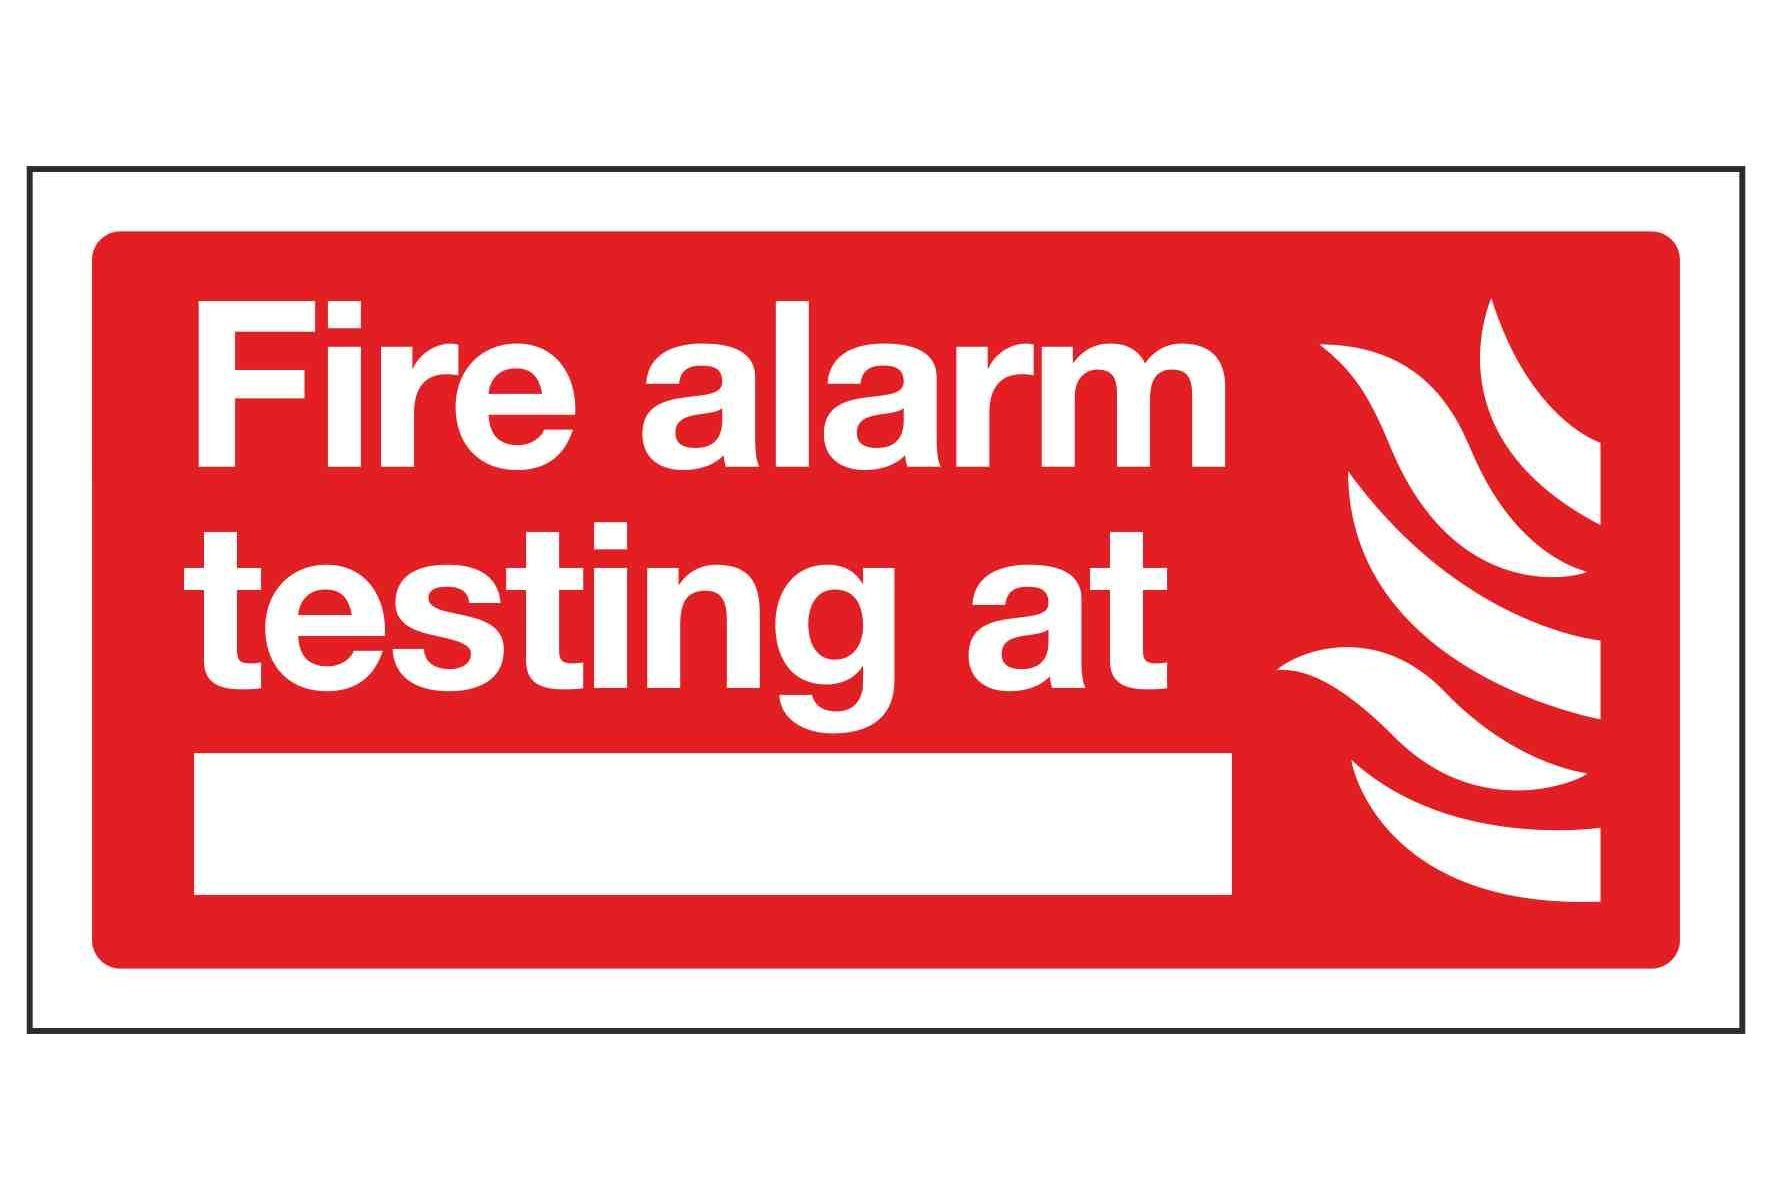 Fire alarm testing at -